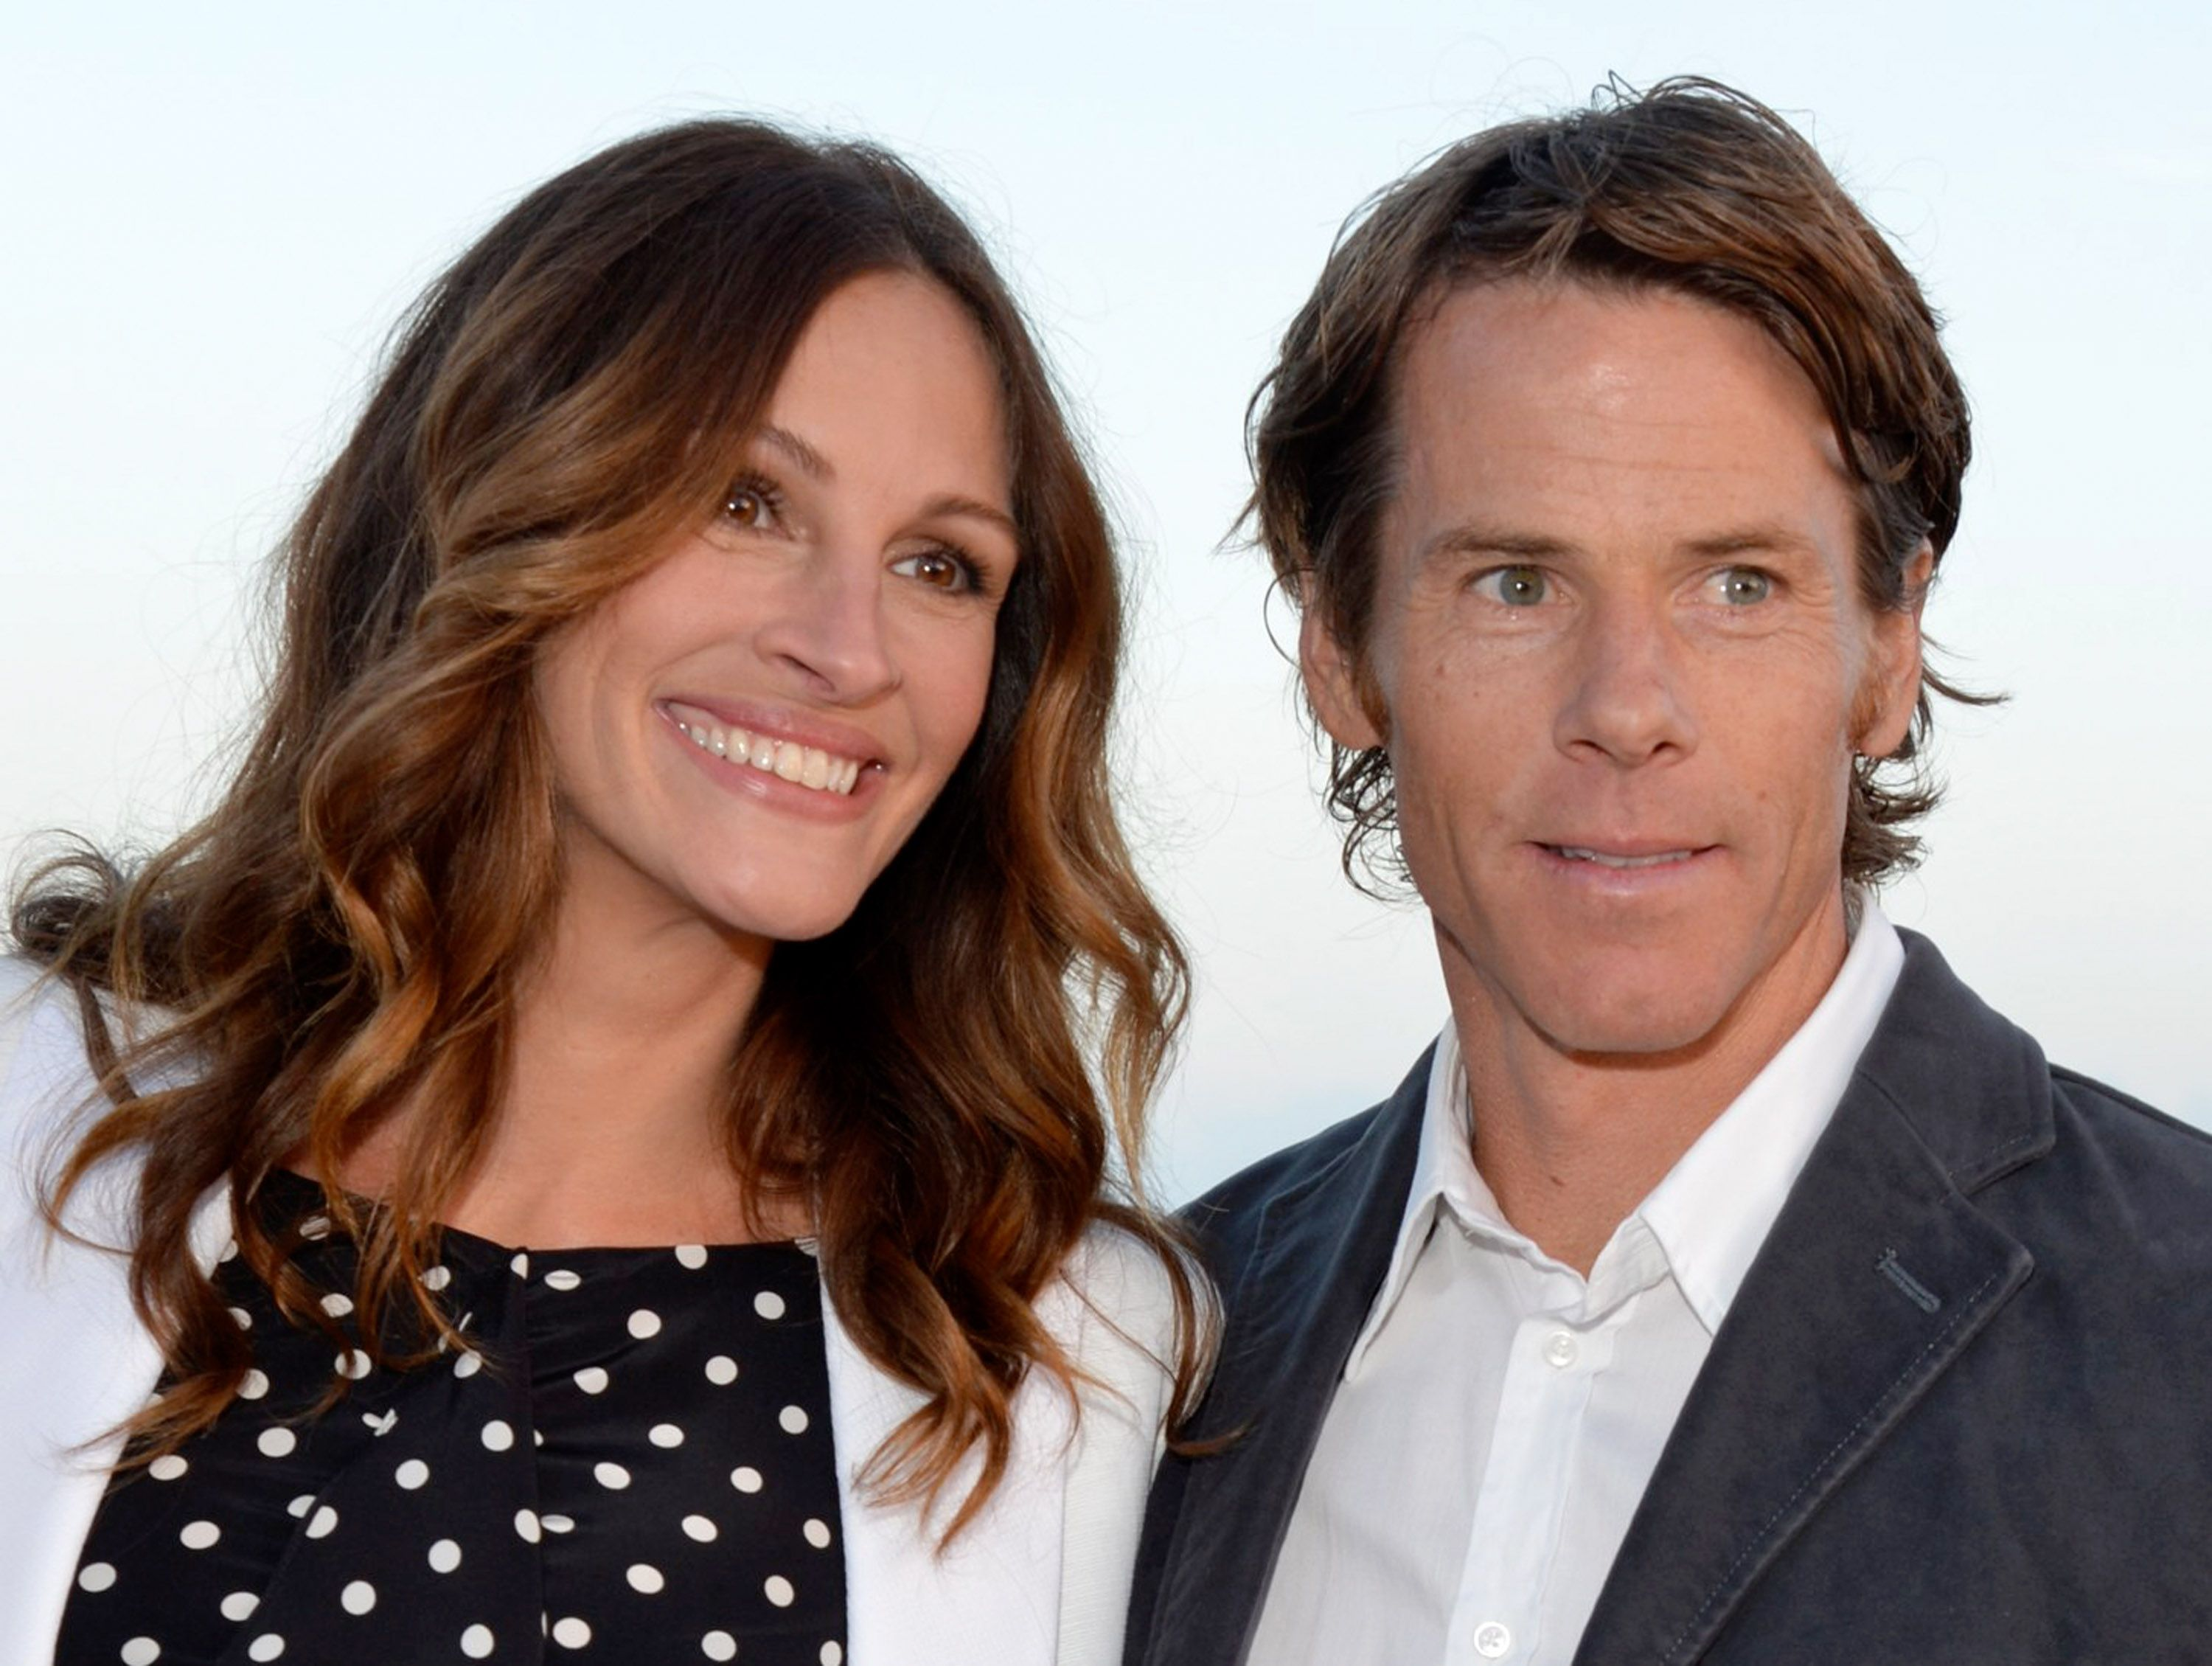 Oh Look, Now Julia Roberts Is Allegedly Getting Divorced Too